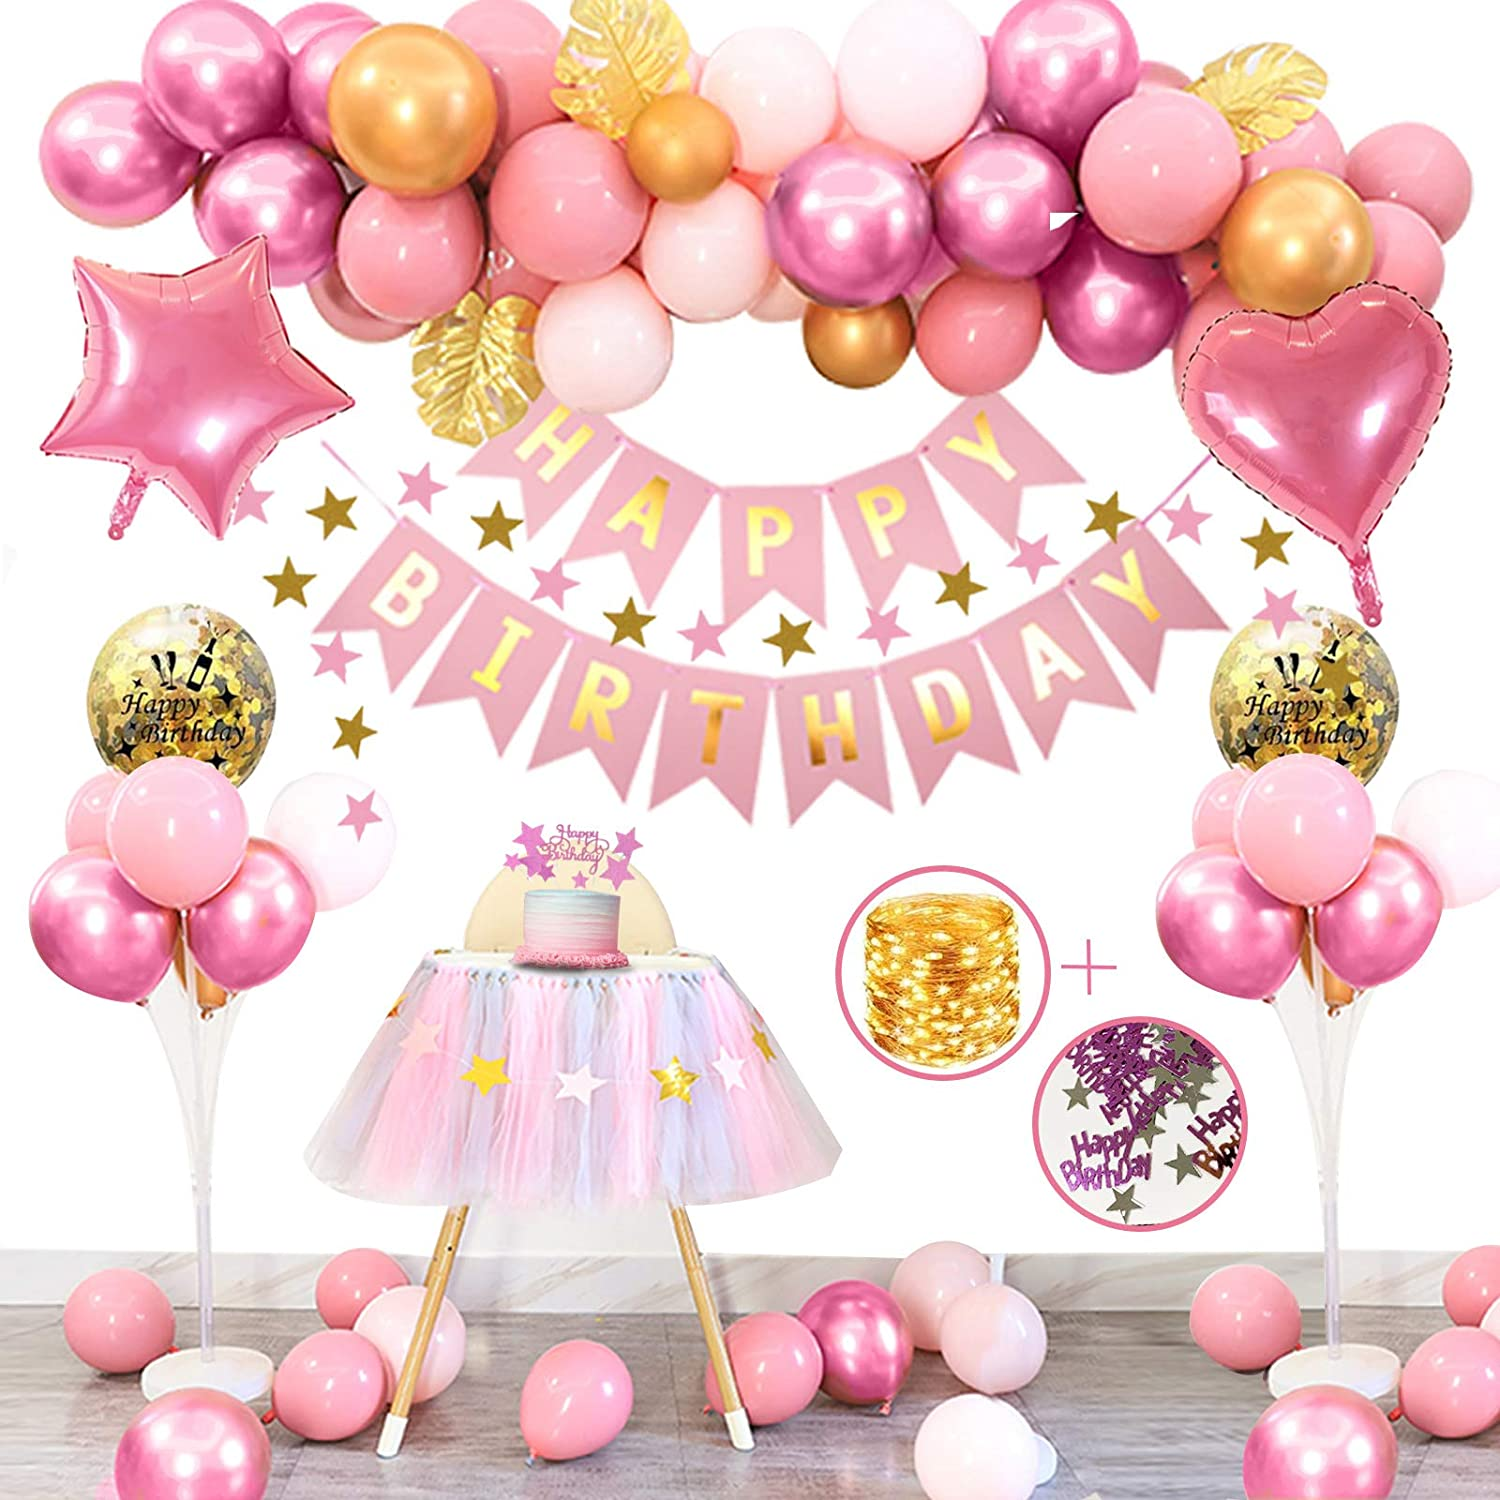 APERIL Pink Birthday Decorations Girls Happy Birthday Banner Pink Balloons Metallic Gold Balloons Foil Balloons Palm Leaves Cake Topper 10g Table Confetti Party Supplies with 3M String Lights